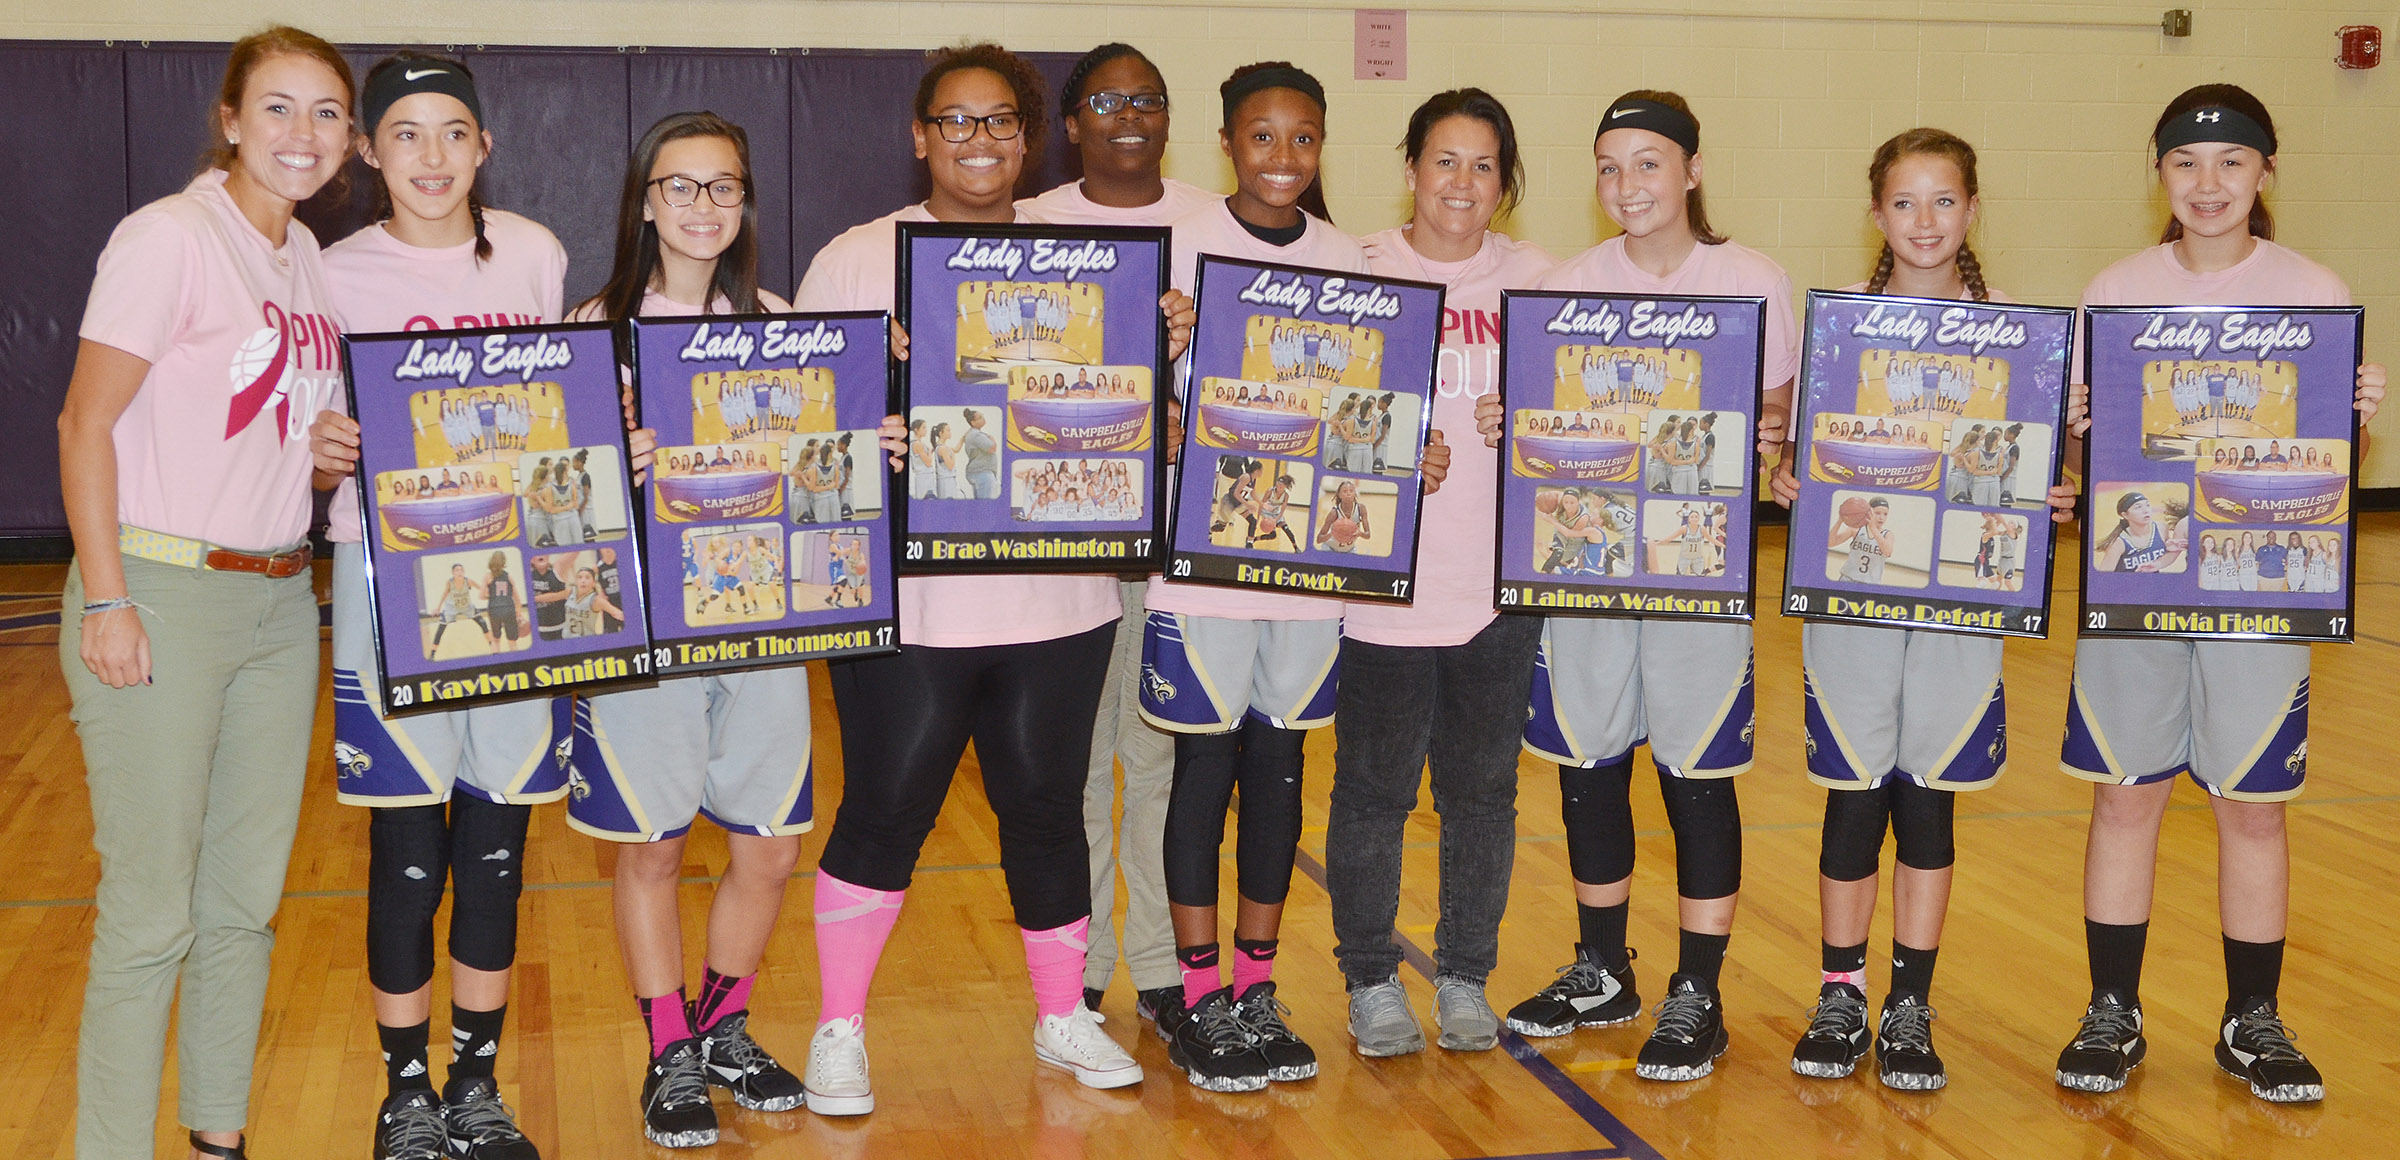 CMS girls' basketball eighth-grade players are honored. From left are assistant coach LeeAnn Grider, Kaylyn Smith, Tayler Thompson, Brae Washington, head coach Tiarra Cecil, Bri Gowdy, assistant coach Kathy England, Lainey Watson, Rylee Petett and Olivia Fields.